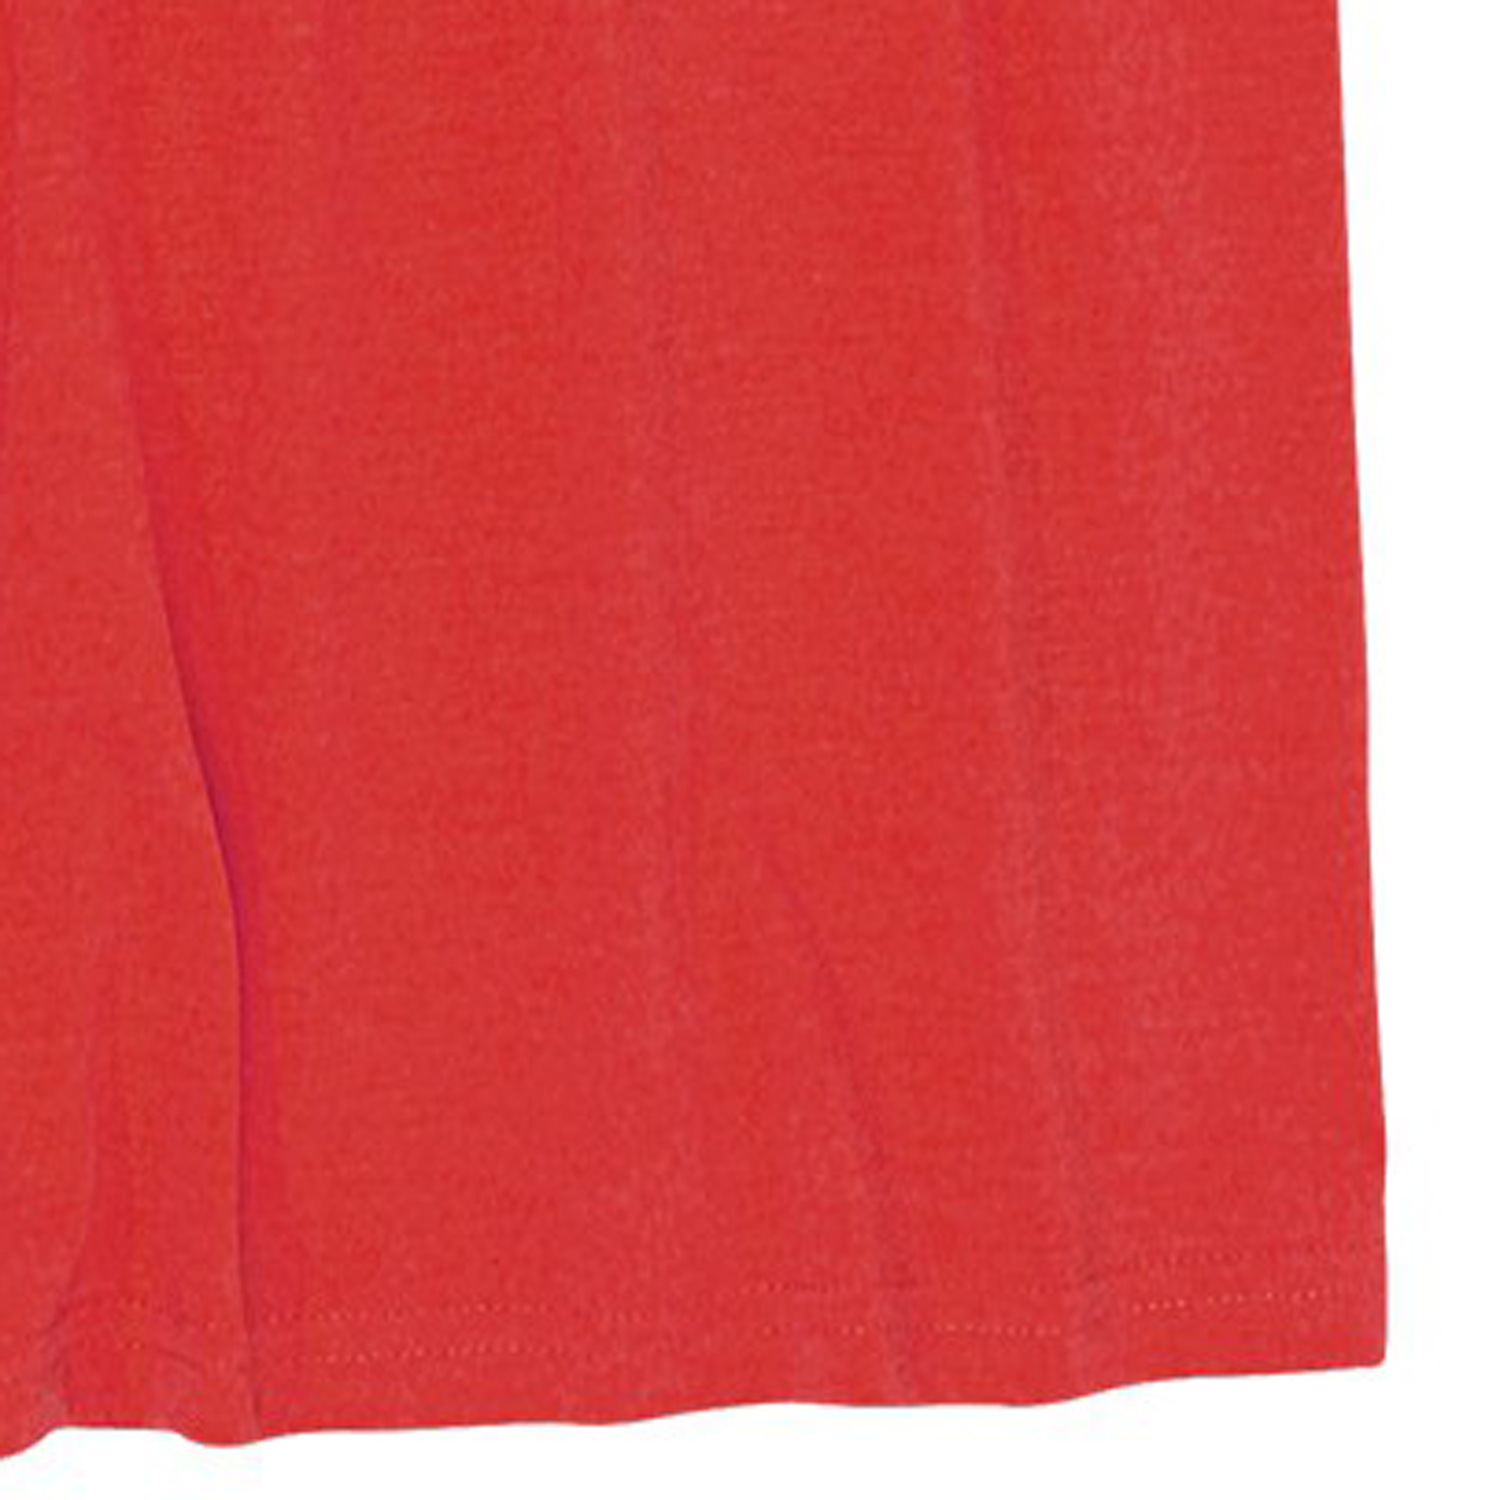 Detail Image to T-shirt in red with crew neck by redfield in extra large sizes up to 8XL